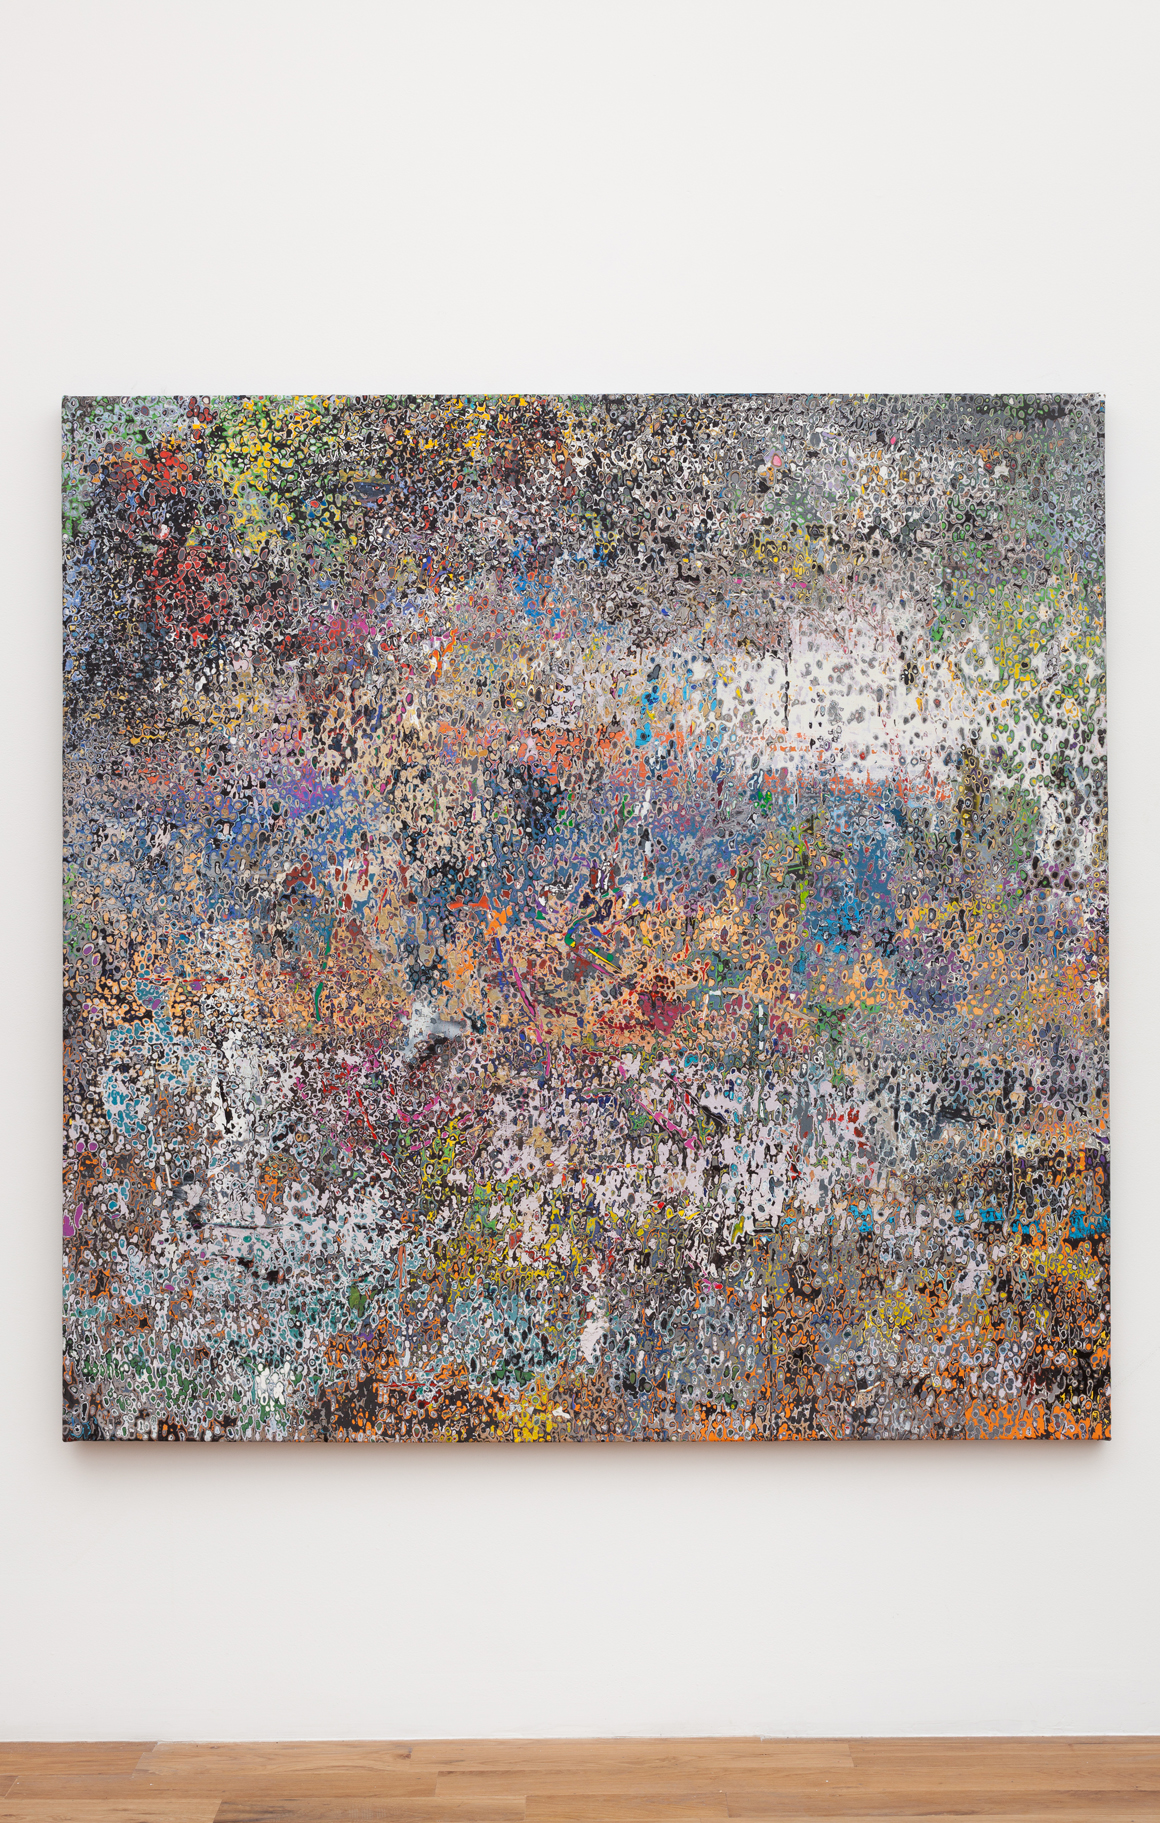 "<p><span class=""name"">Andrew Jensdotter</span><br><em>Artforum April 2005</em><span class='media'>Acrylic on canvas</span>64.5 x 64.5 in (163.8 x 163.8 cm)<br>2016<br></p>"